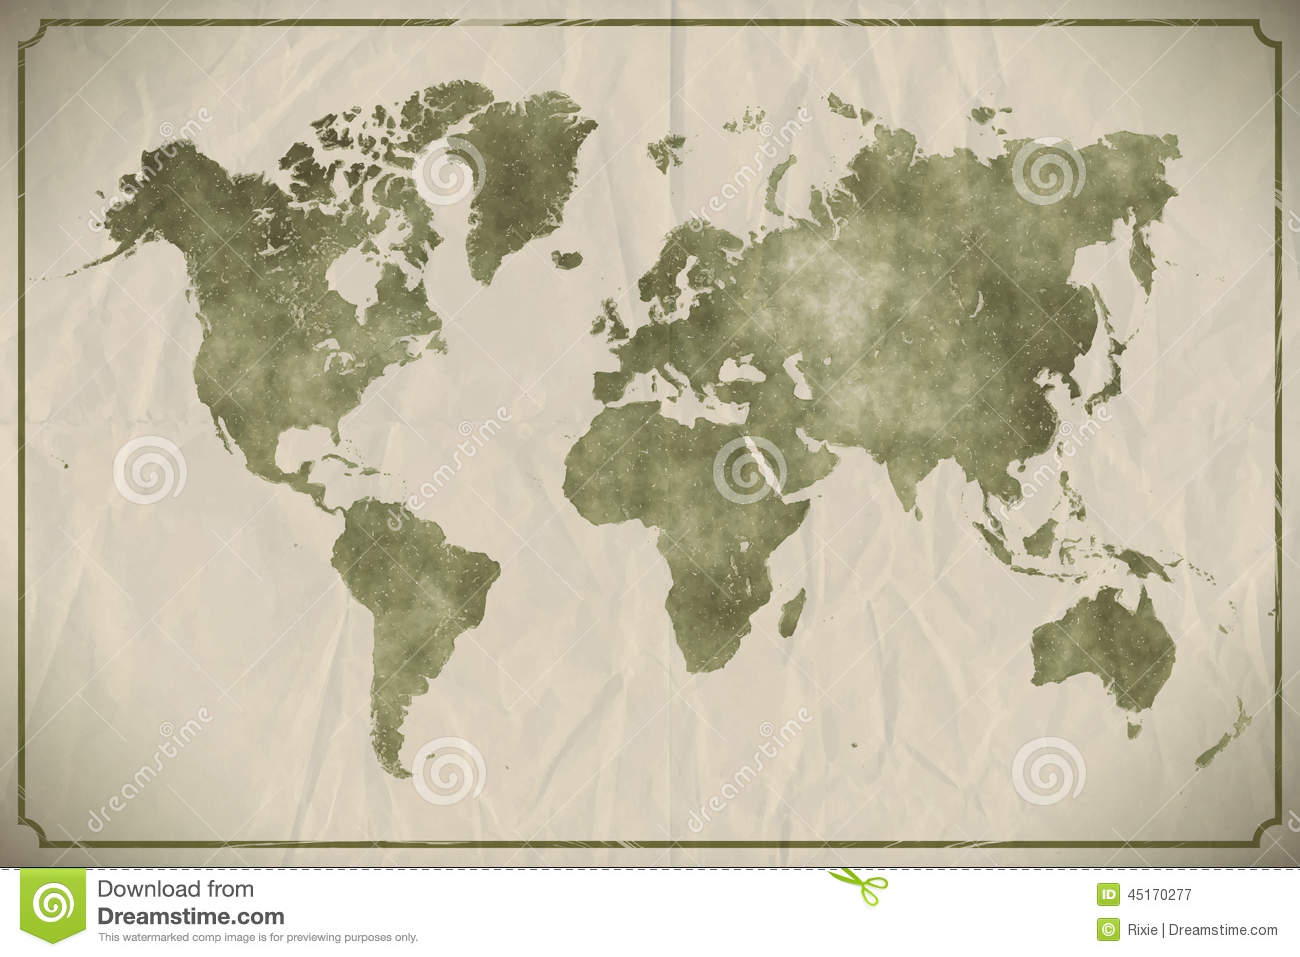 World map watercolour stock vector illustration of earth 45170277 world map watercolour royalty free vector download gumiabroncs Image collections